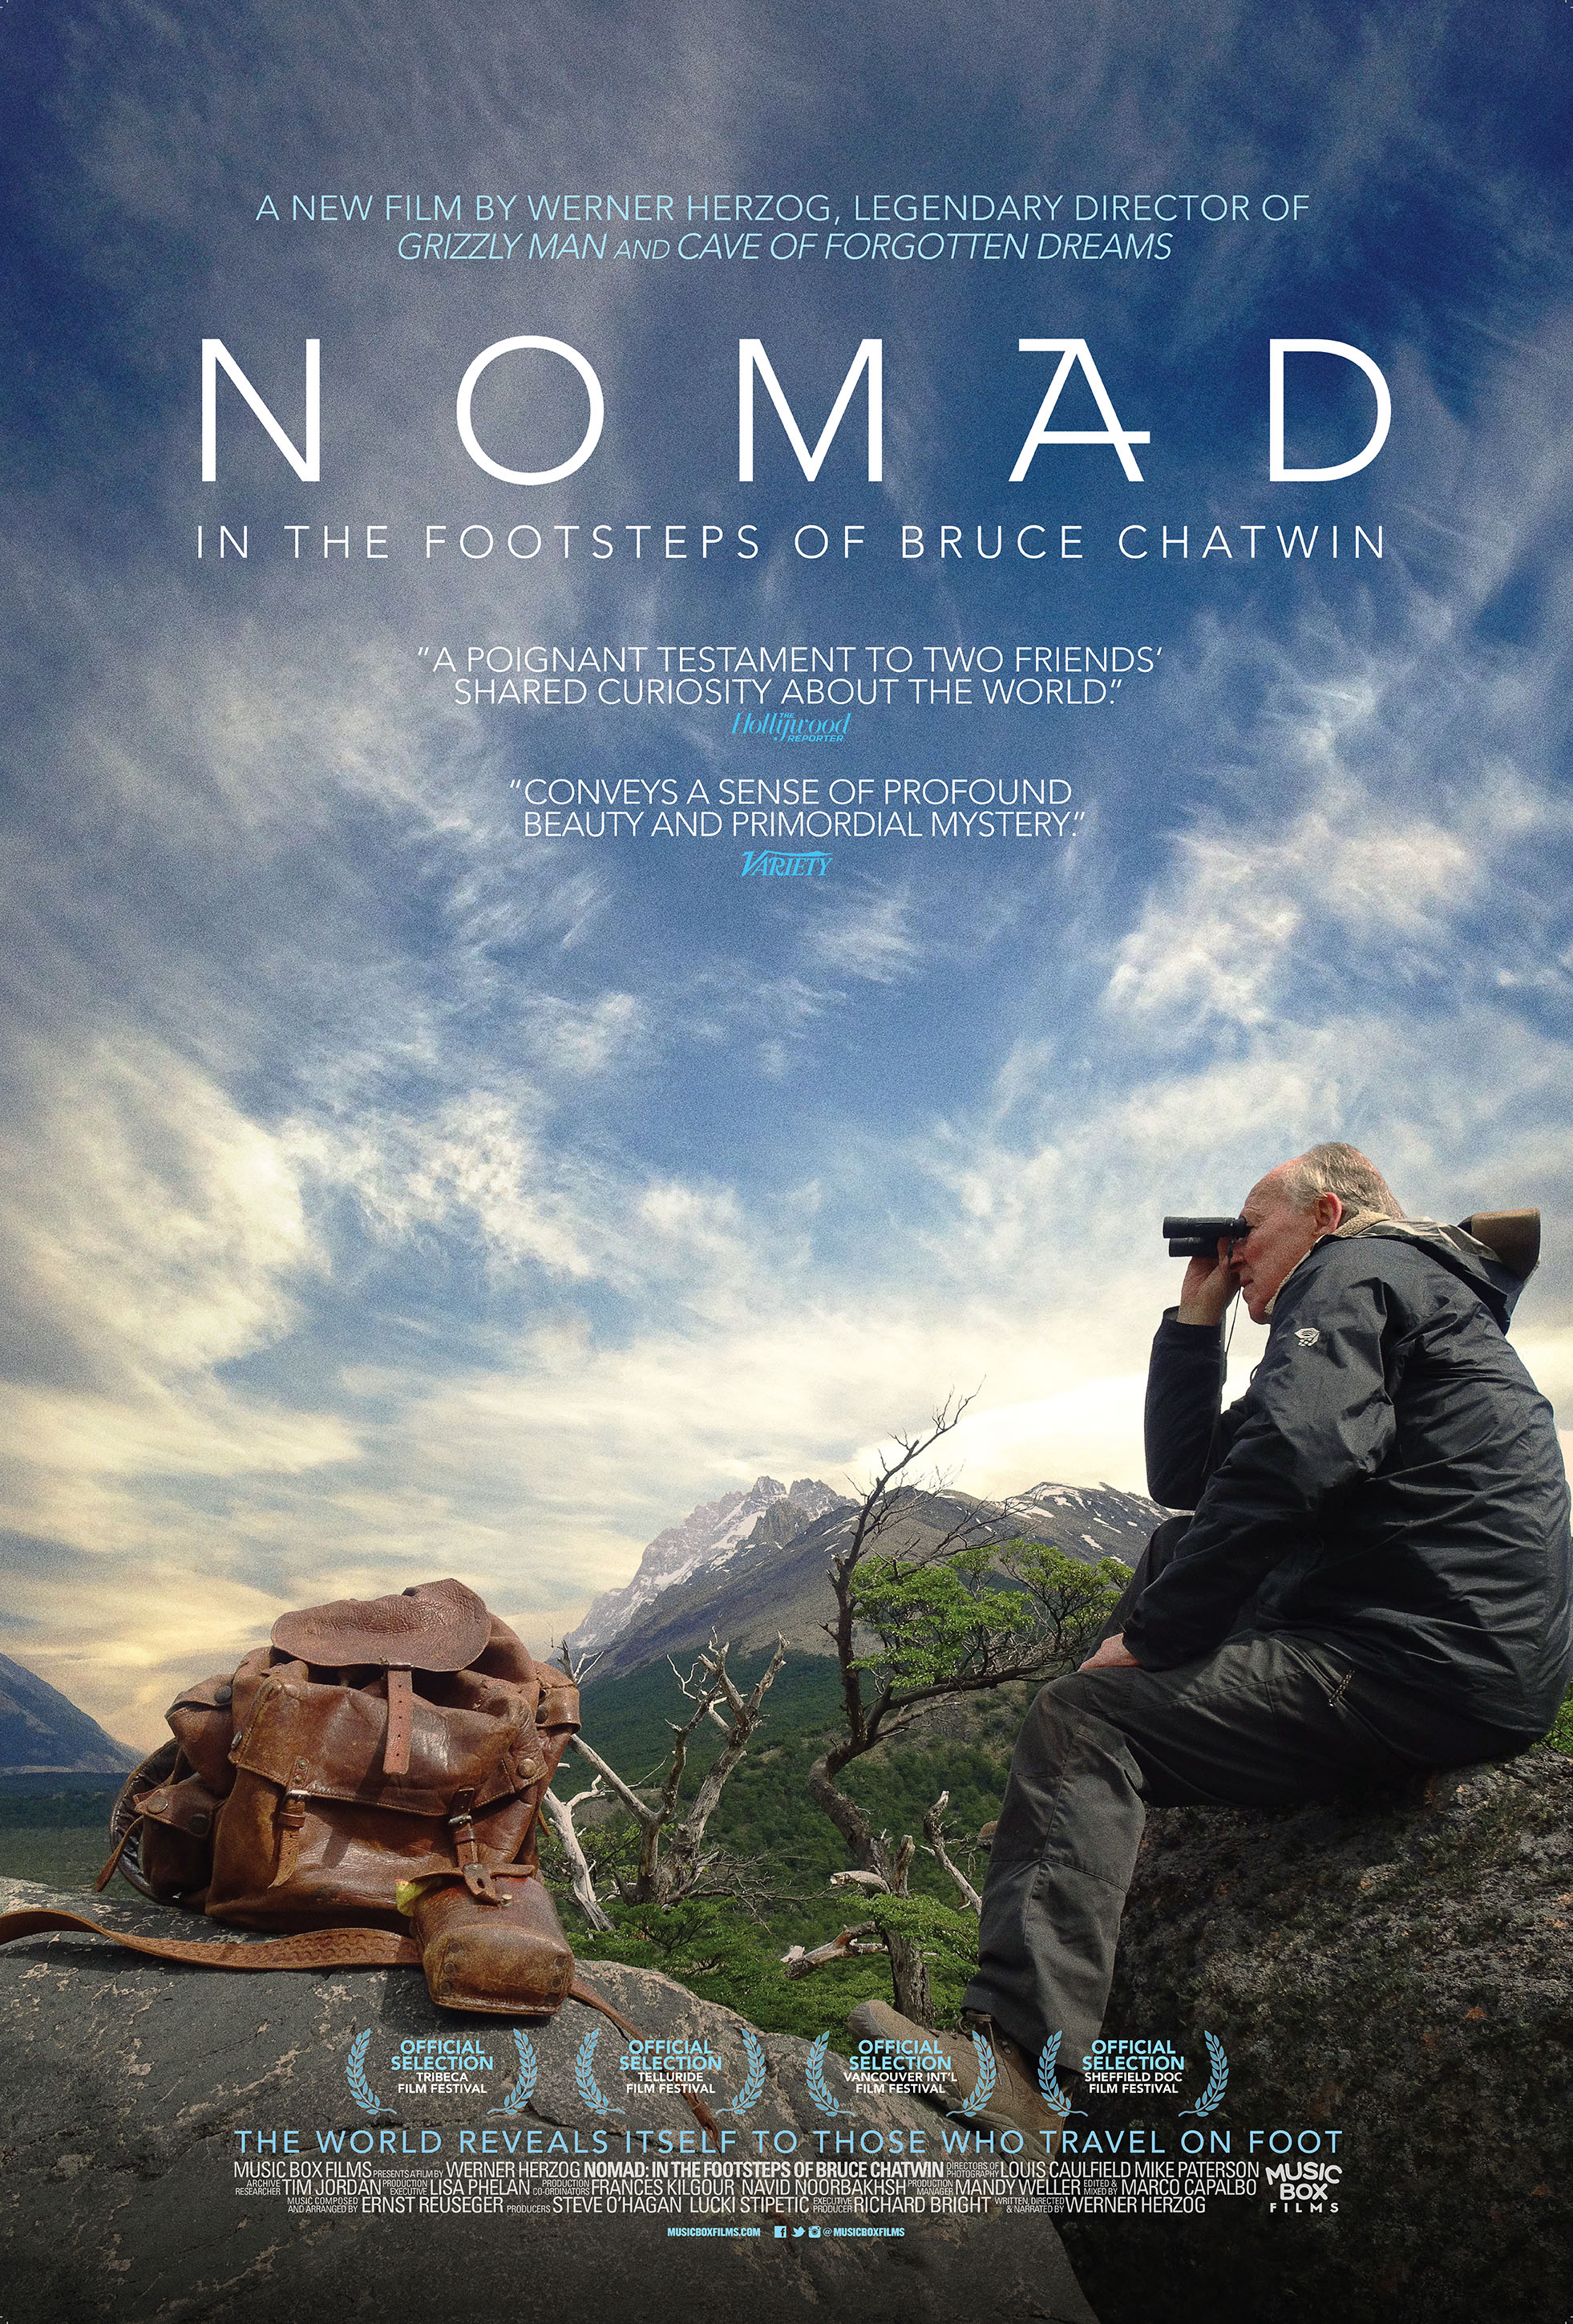 Poster for Nomad: In the Footsteps of Bruce Chatwin